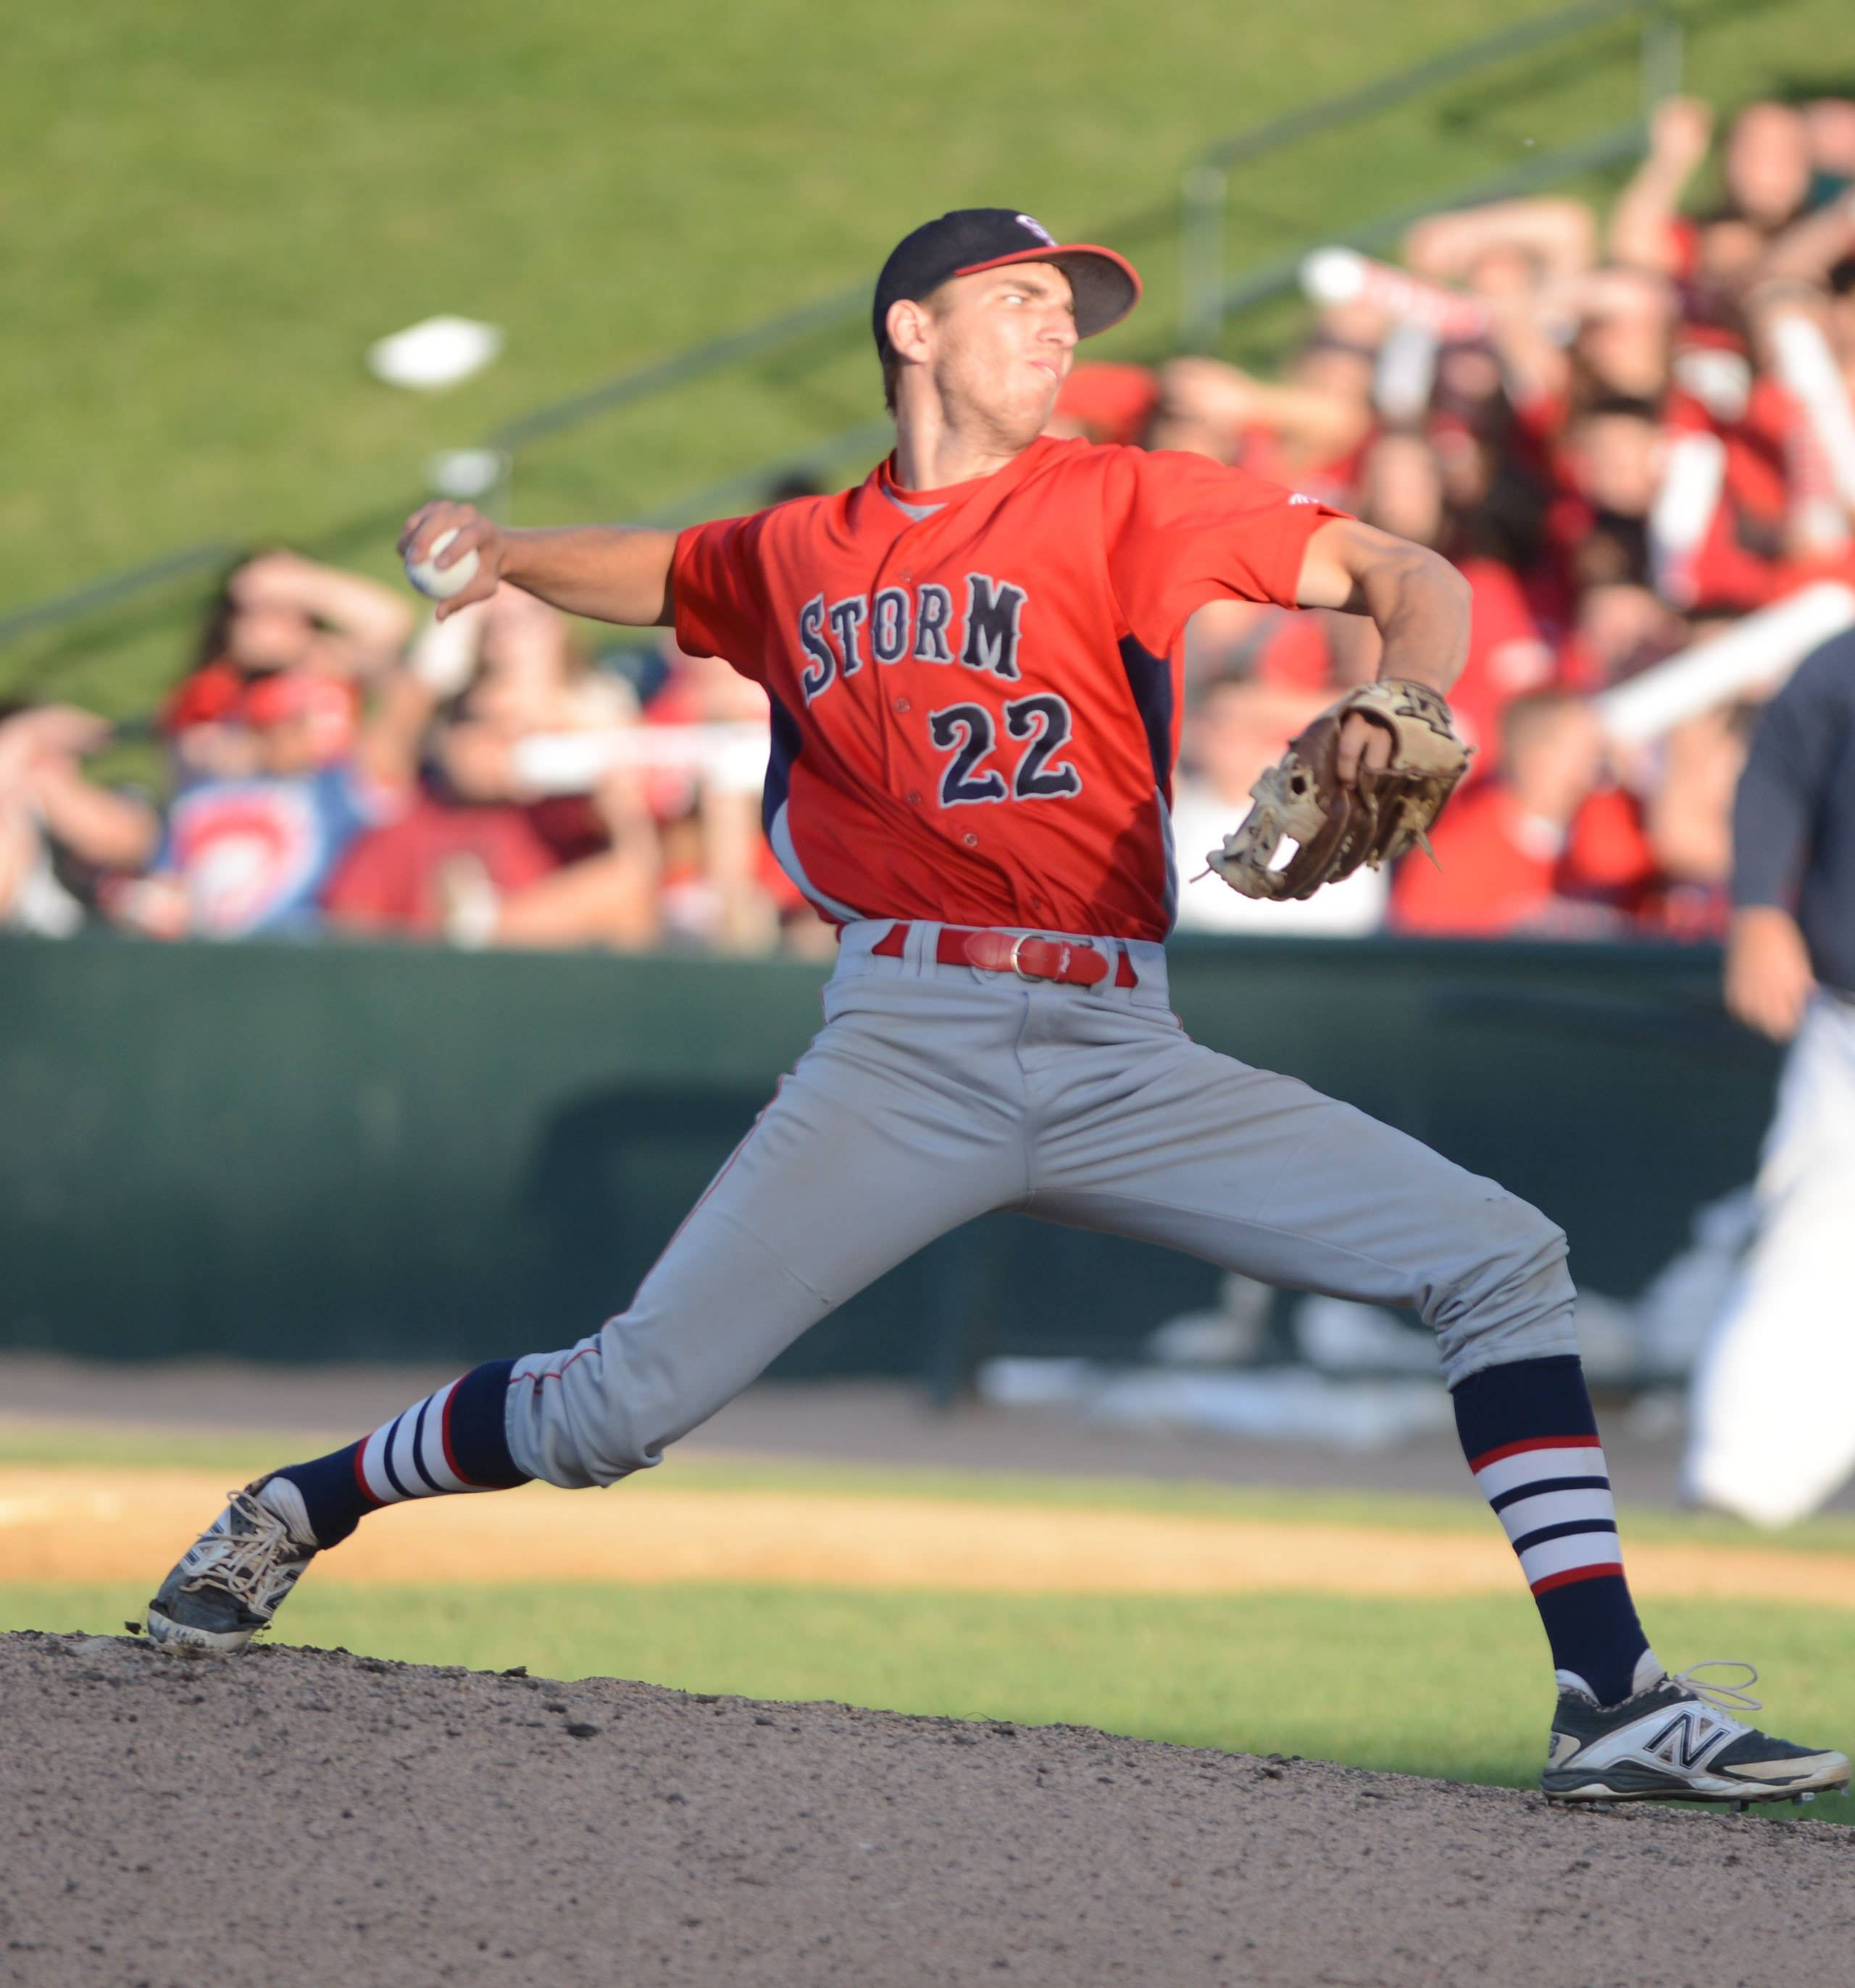 South Elgin's Ryan Nutof delivers against St. Rita during the Class 4A baseball state semifinals in Joliet on Friday.